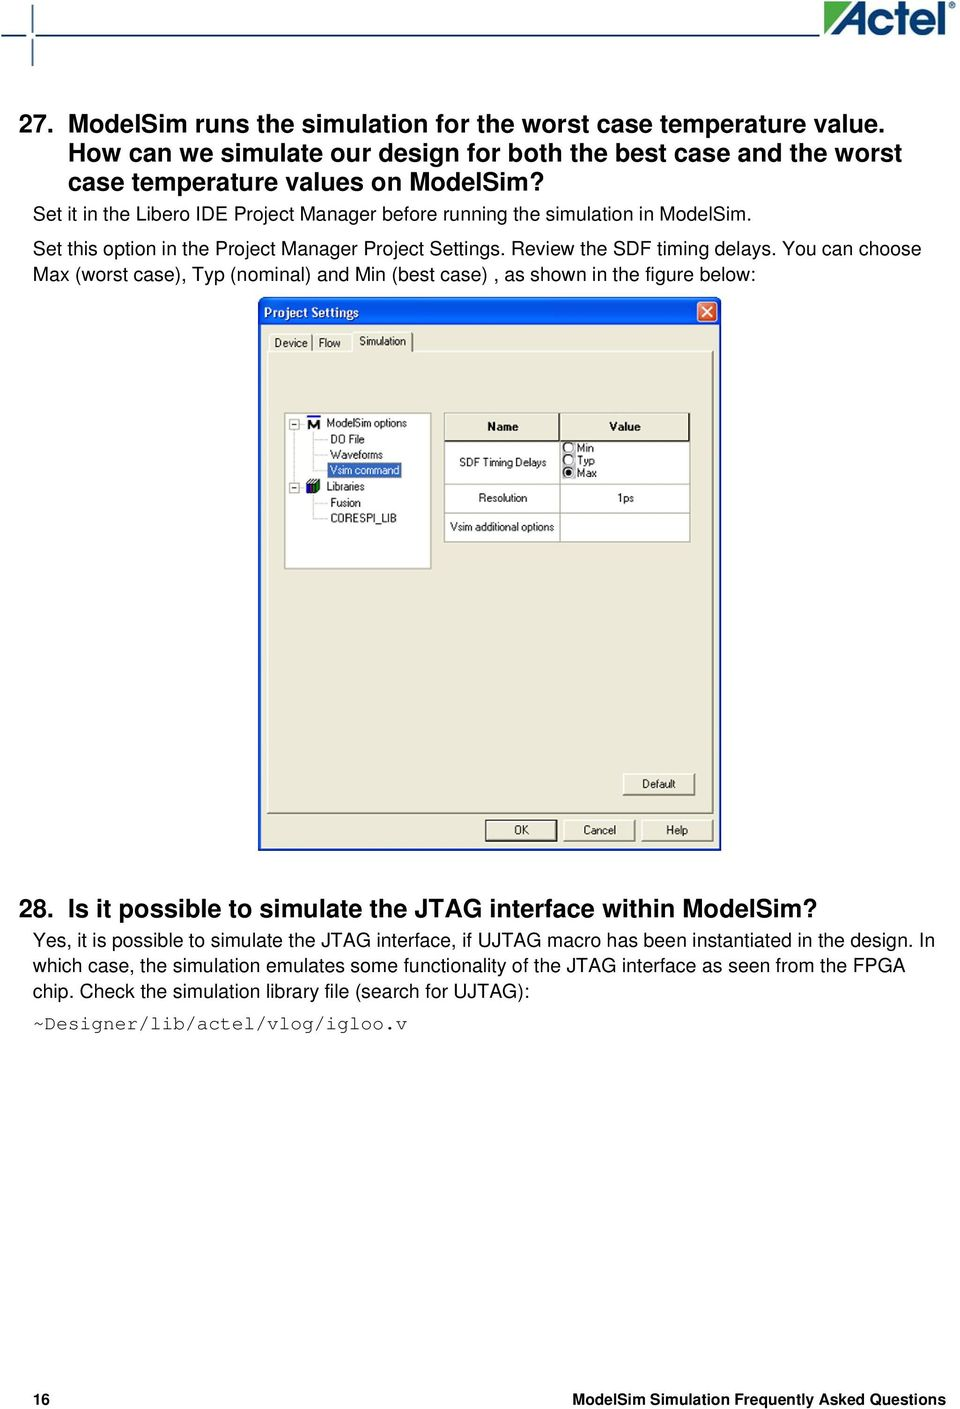 ModelSim Simulation Frequently Asked Questions - PDF